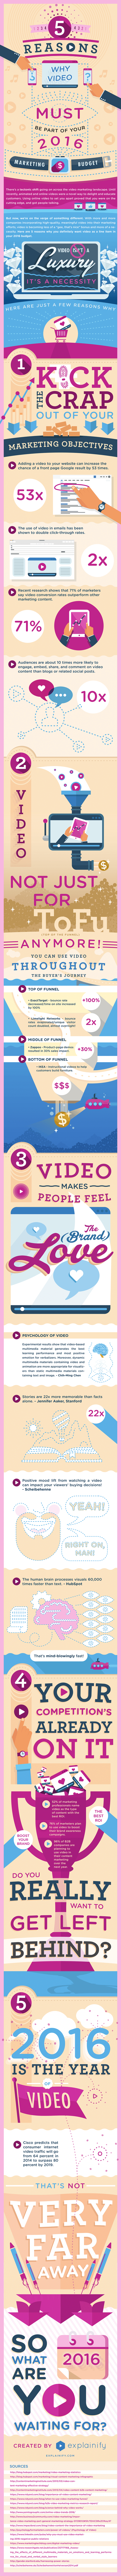 Reasons Why Video Must Be Part of Your 2016 Marketing Budget #Infographic